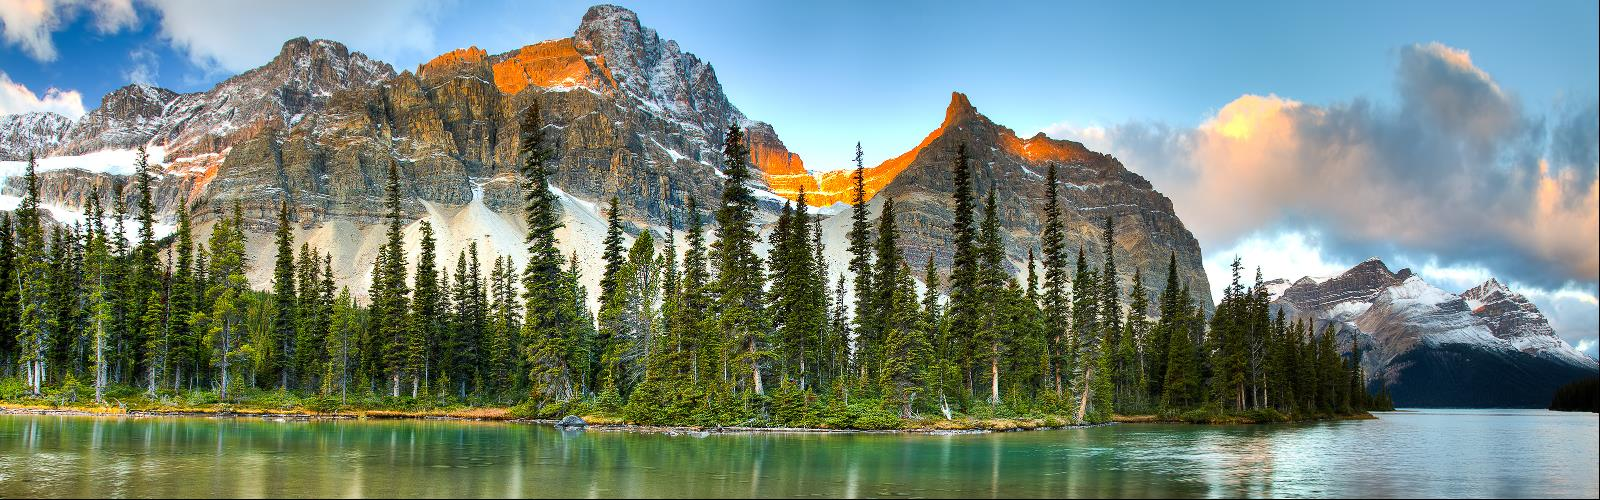 Larch Valley, Banff National Park, Alberta - Hiking  outdoor tree nature snow sky landscape mountain water pond lake forest surrounded